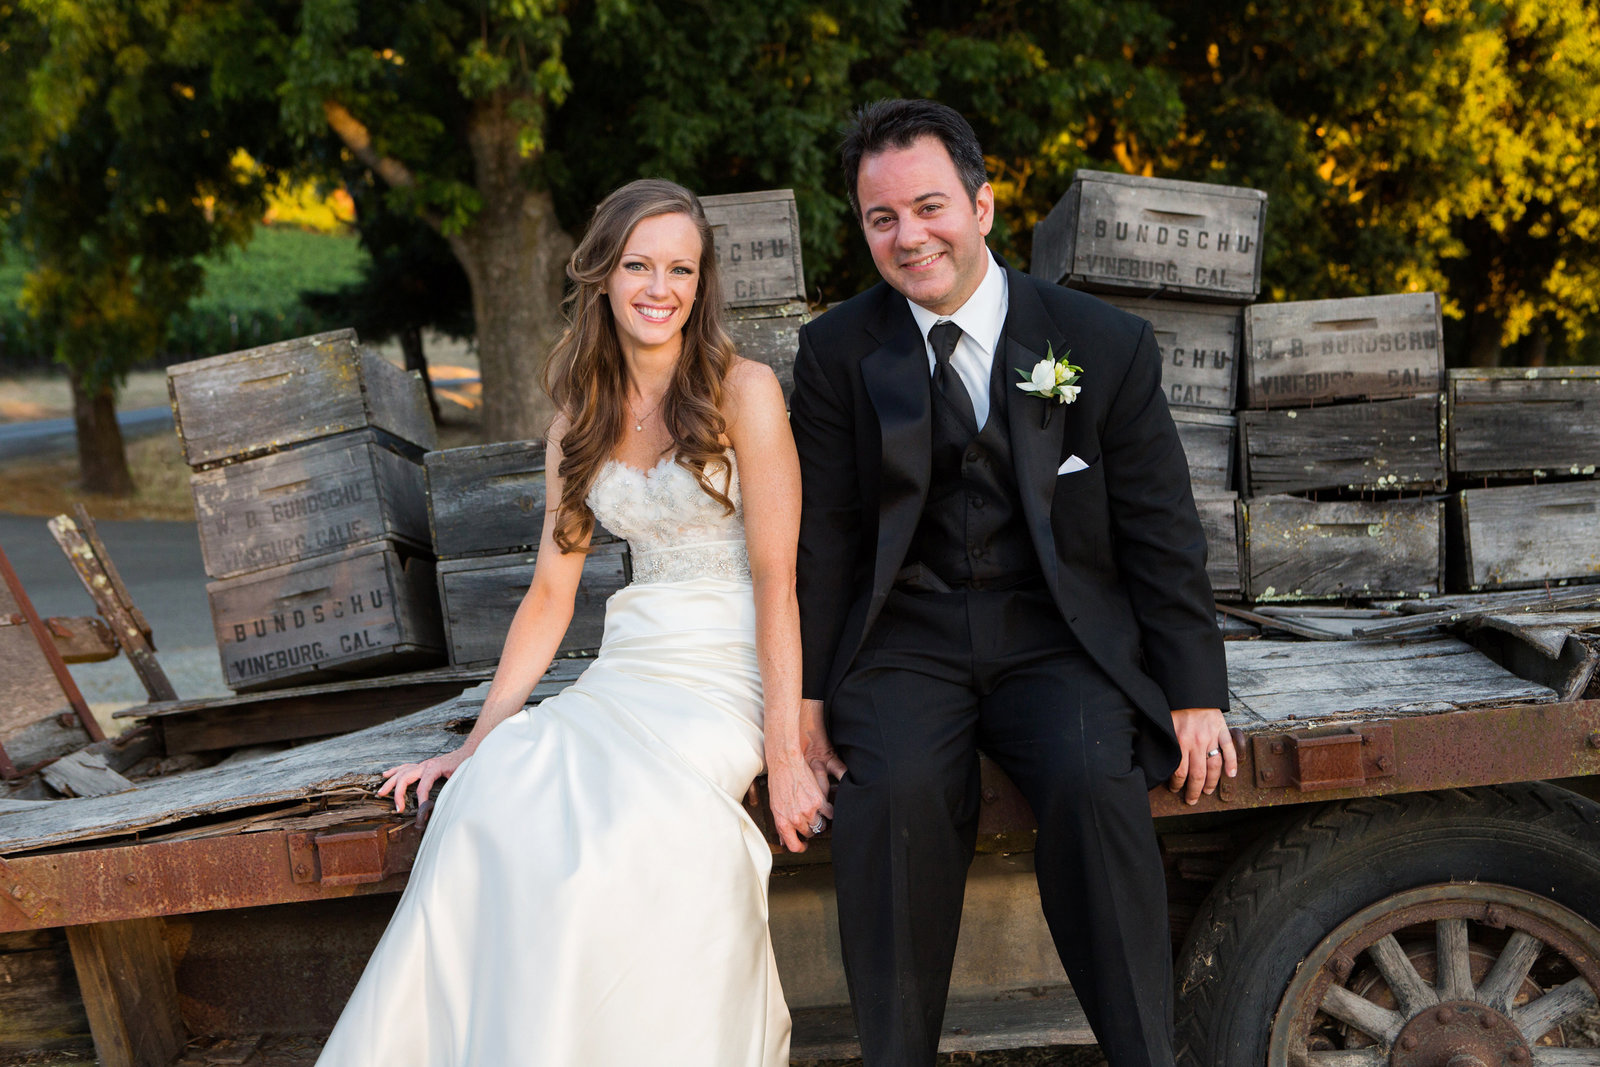 Gundlach Bundschu Winery, Wine Country Wedding, Bride and Groom, Jennifer Baciocco Photography